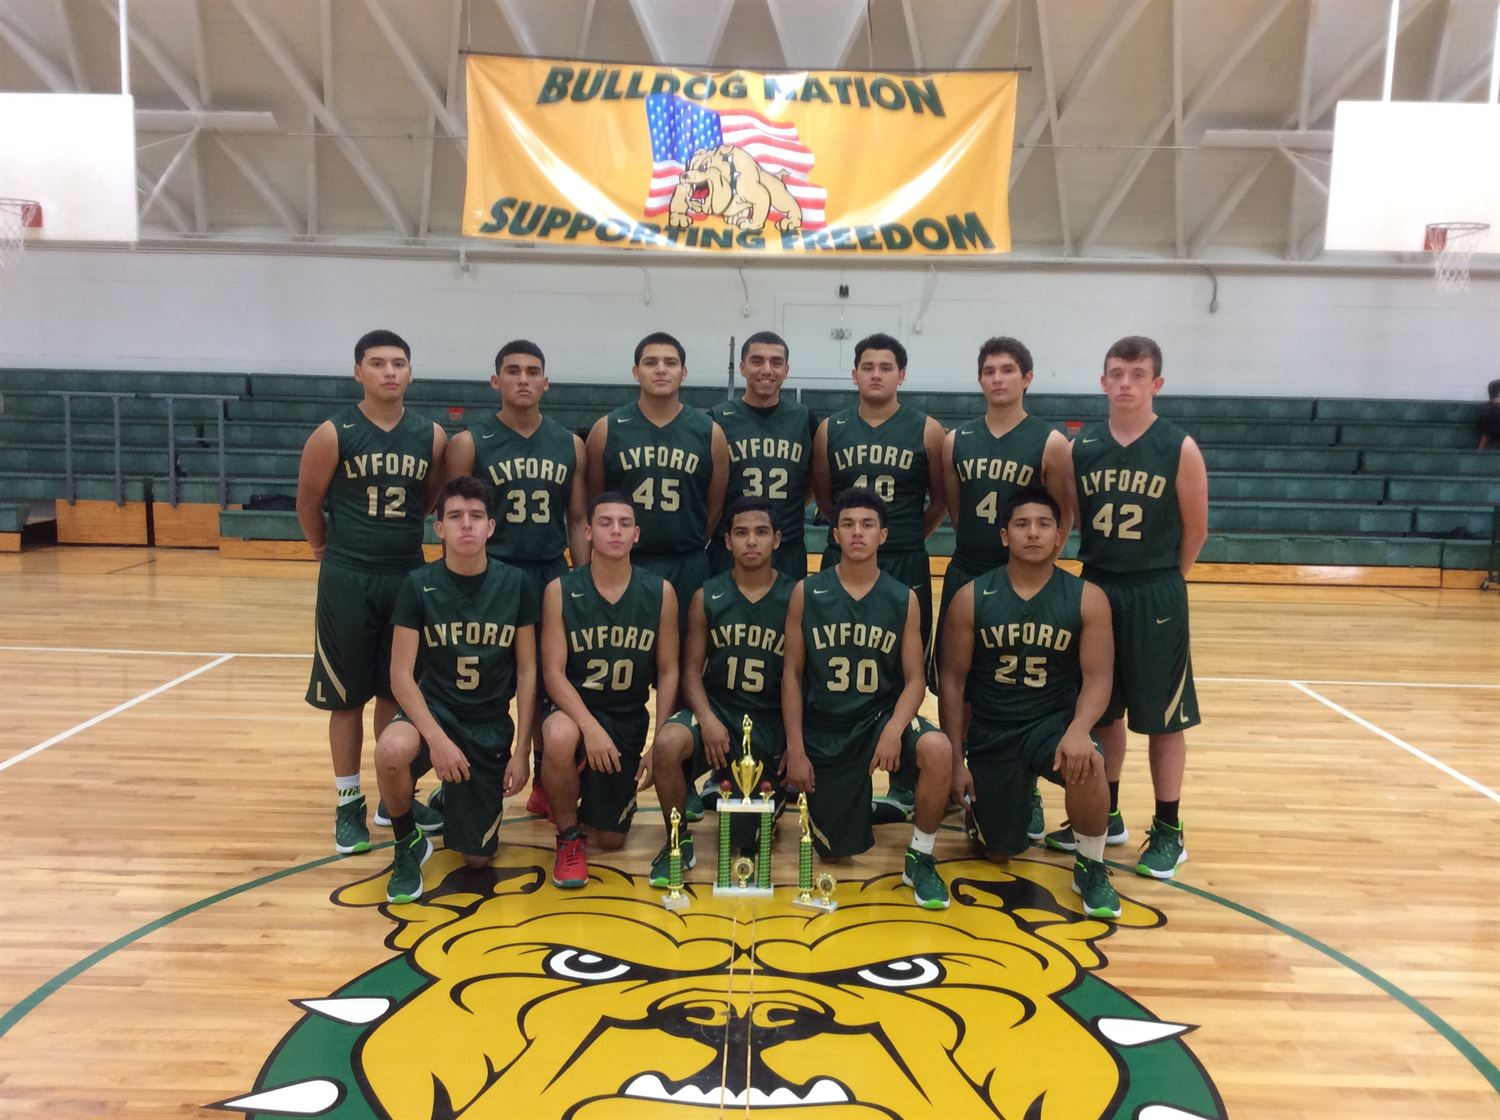 Lyford High School - Boys' Varsity Basketball